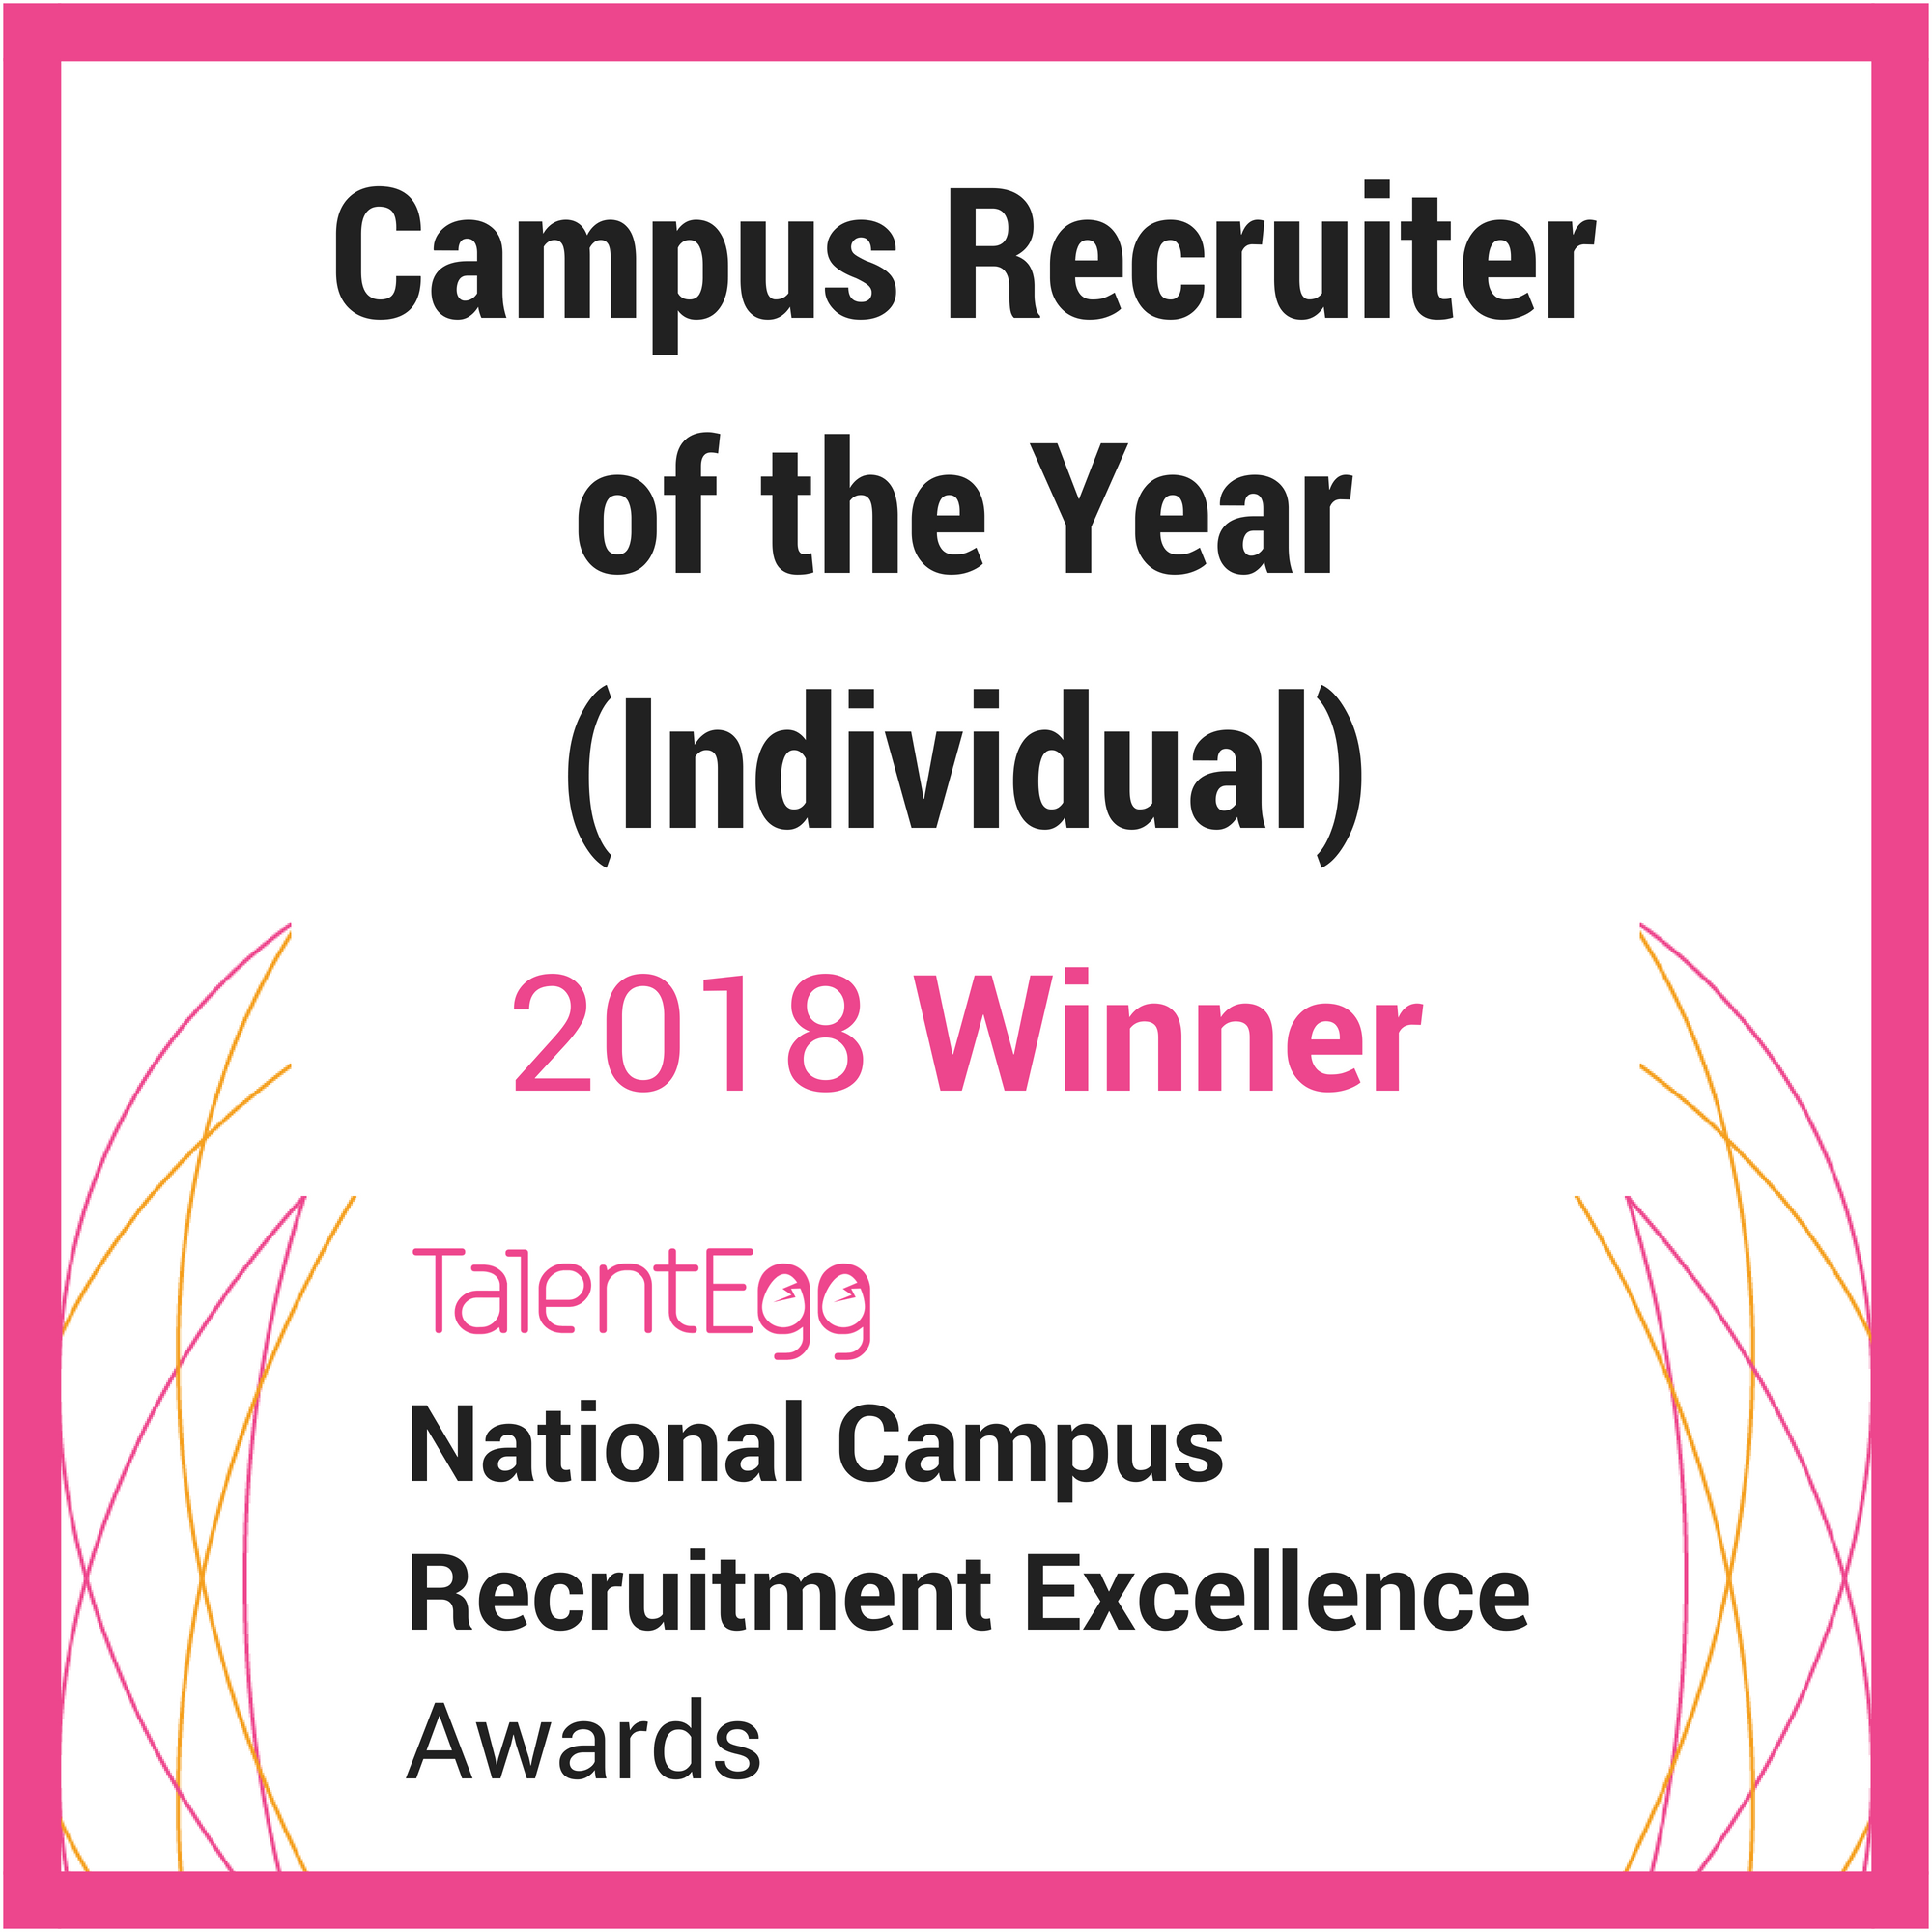 Campus Recruiter of the Year 2018 Winner